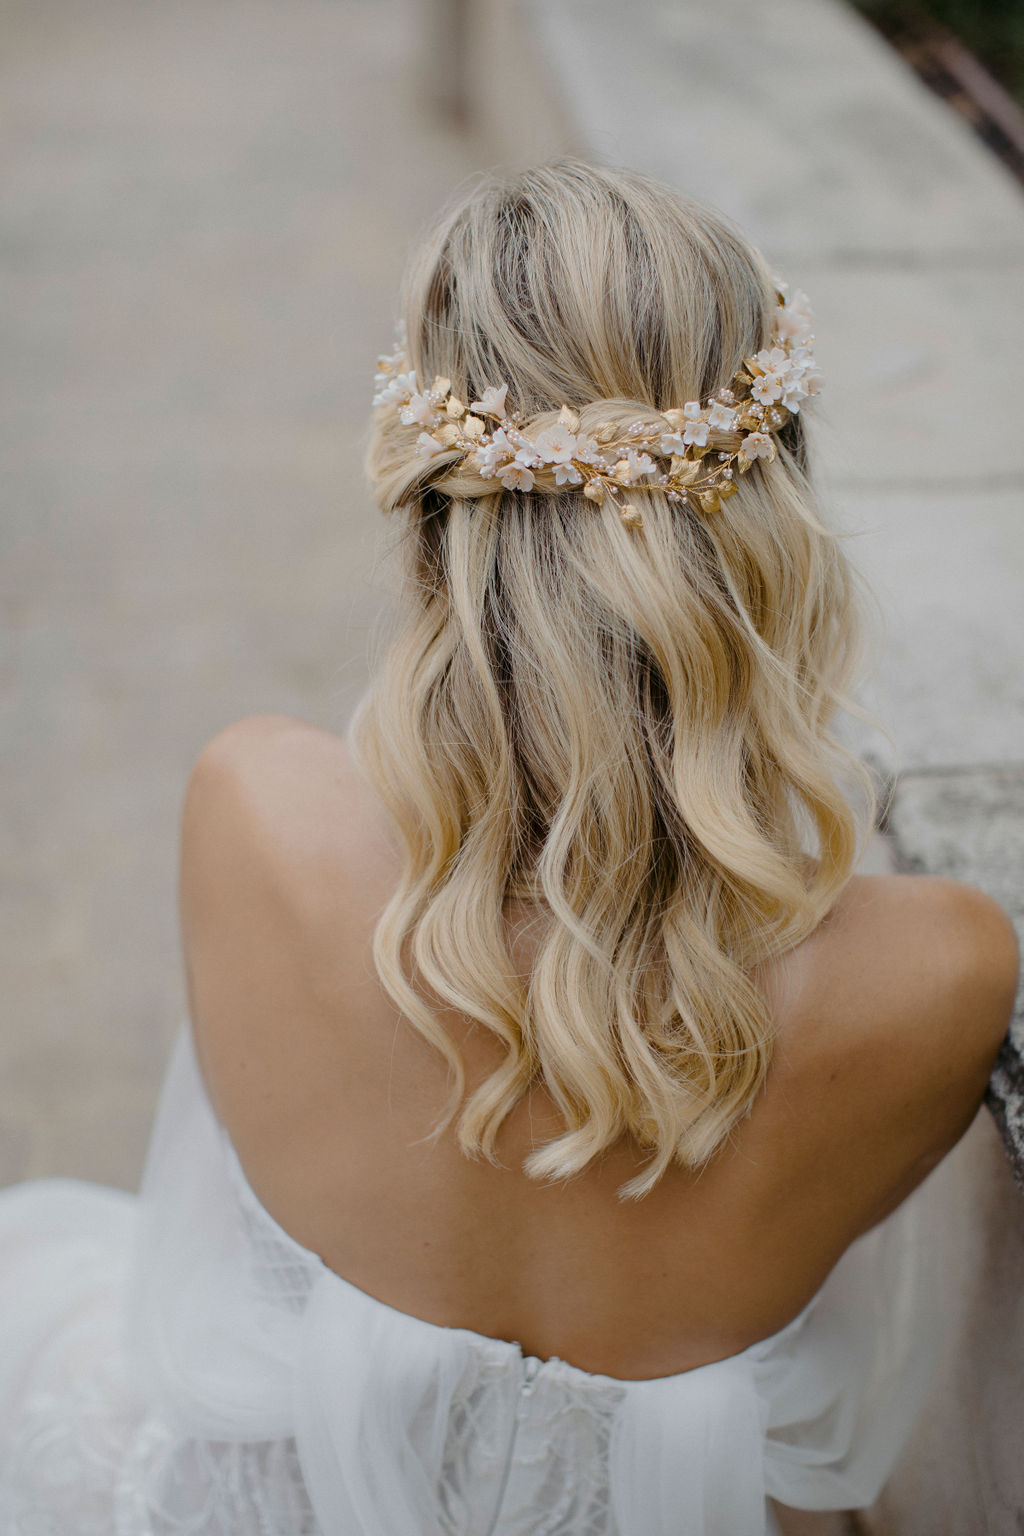 ANA ROSA | FLORAL WEDDING HEADPIECE by TANIA MARAS